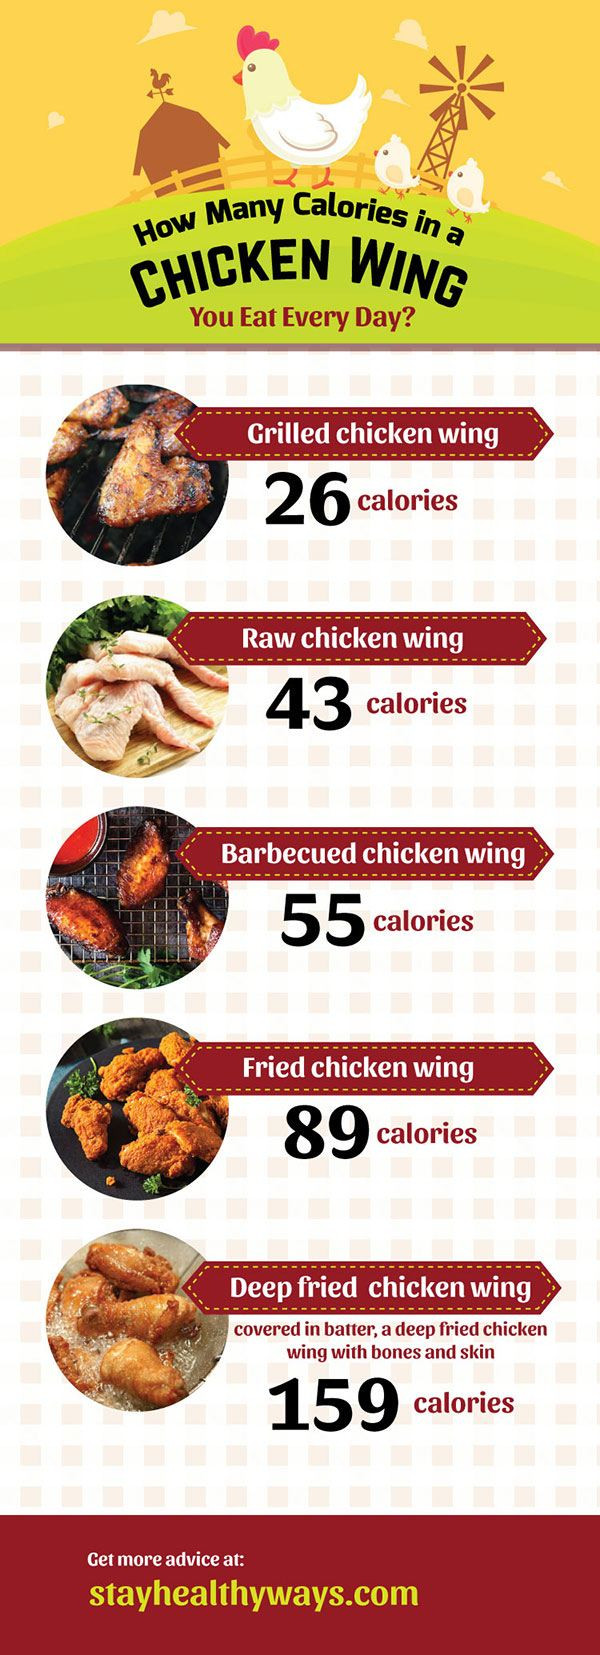 Baked Chicken Calories  How Many Calories In A Chicken Wing You Eat Every Day